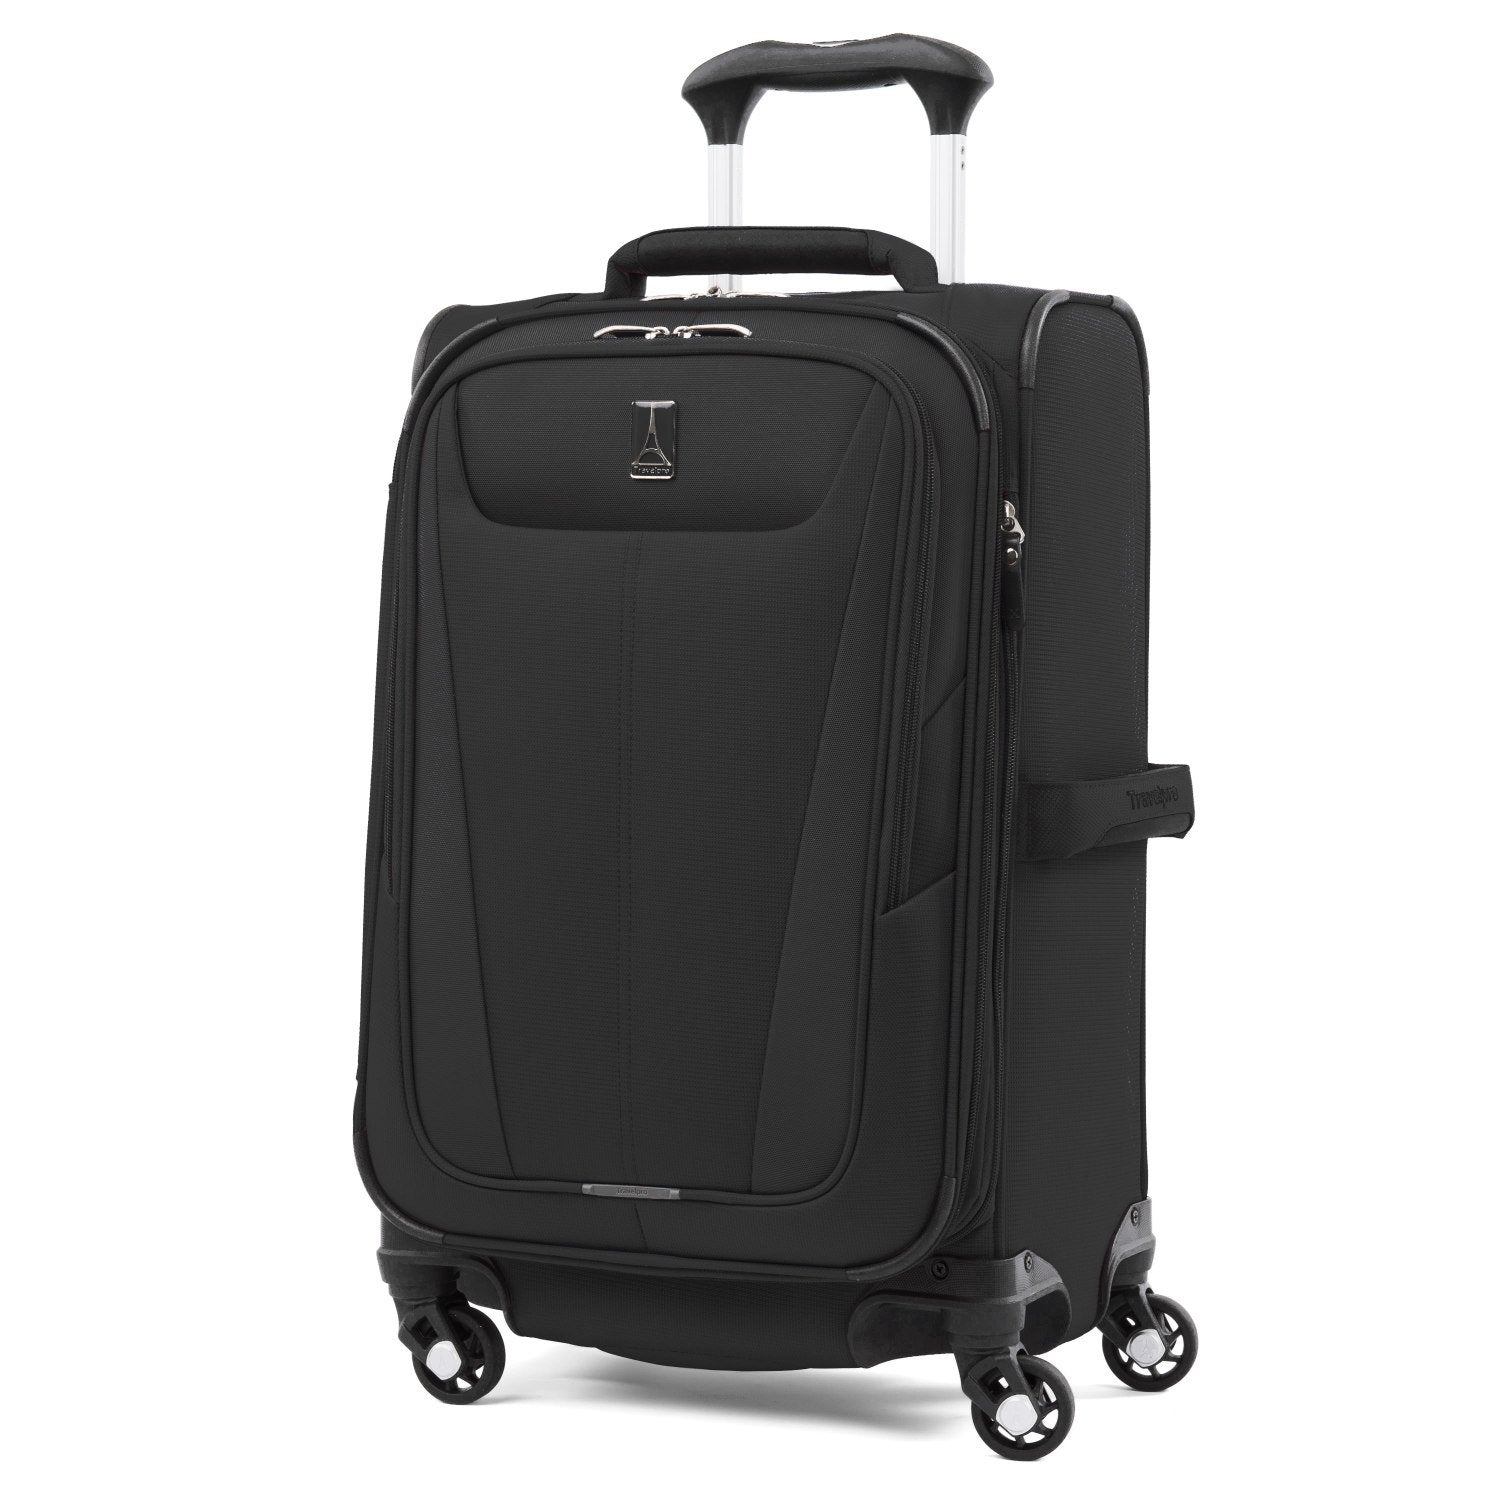 Travelpro Maxlite 5 Carryon